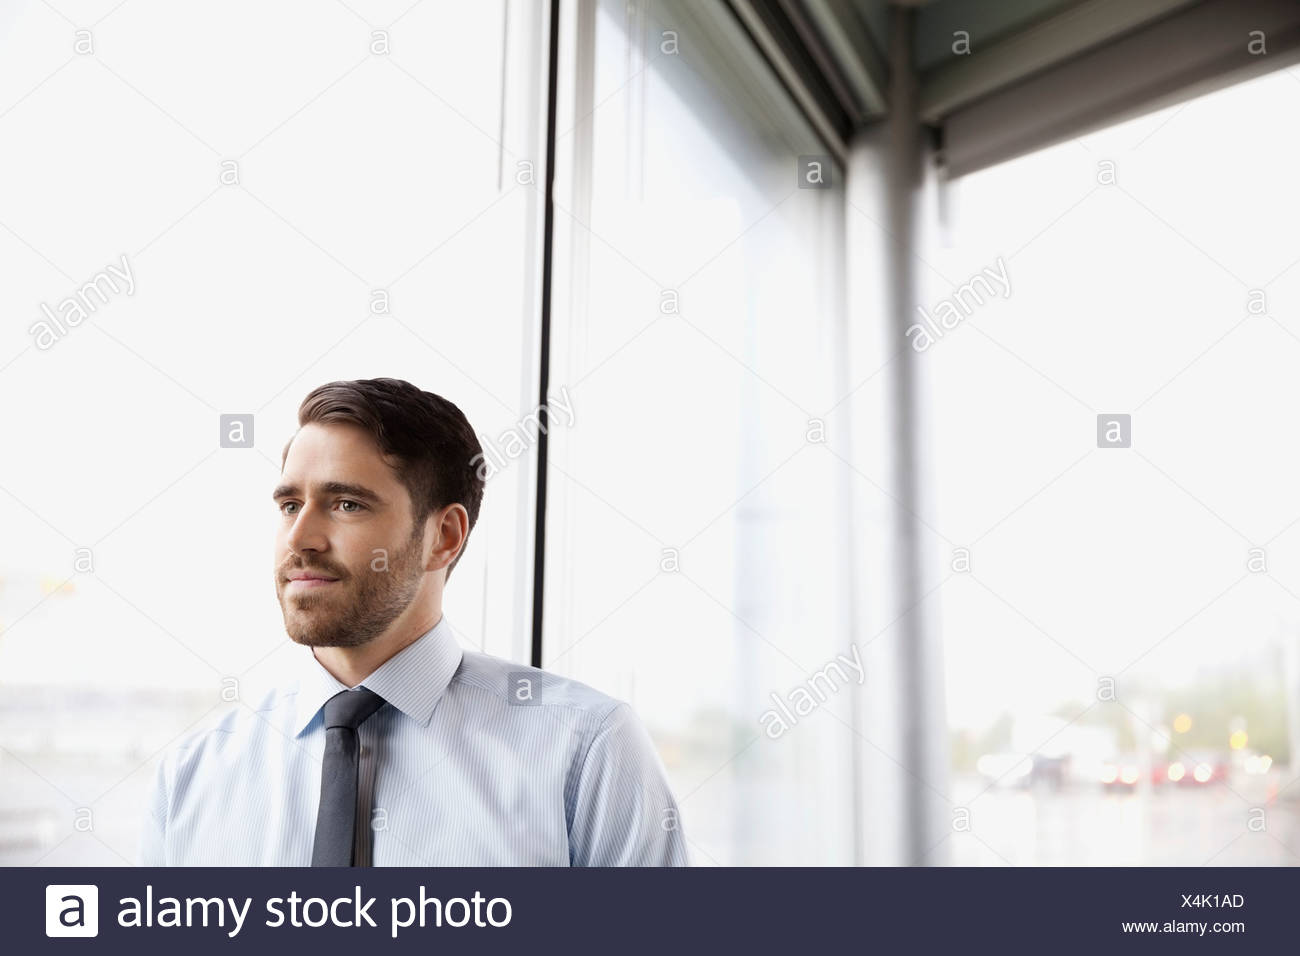 Thoughtful businessman standing by window Photo Stock